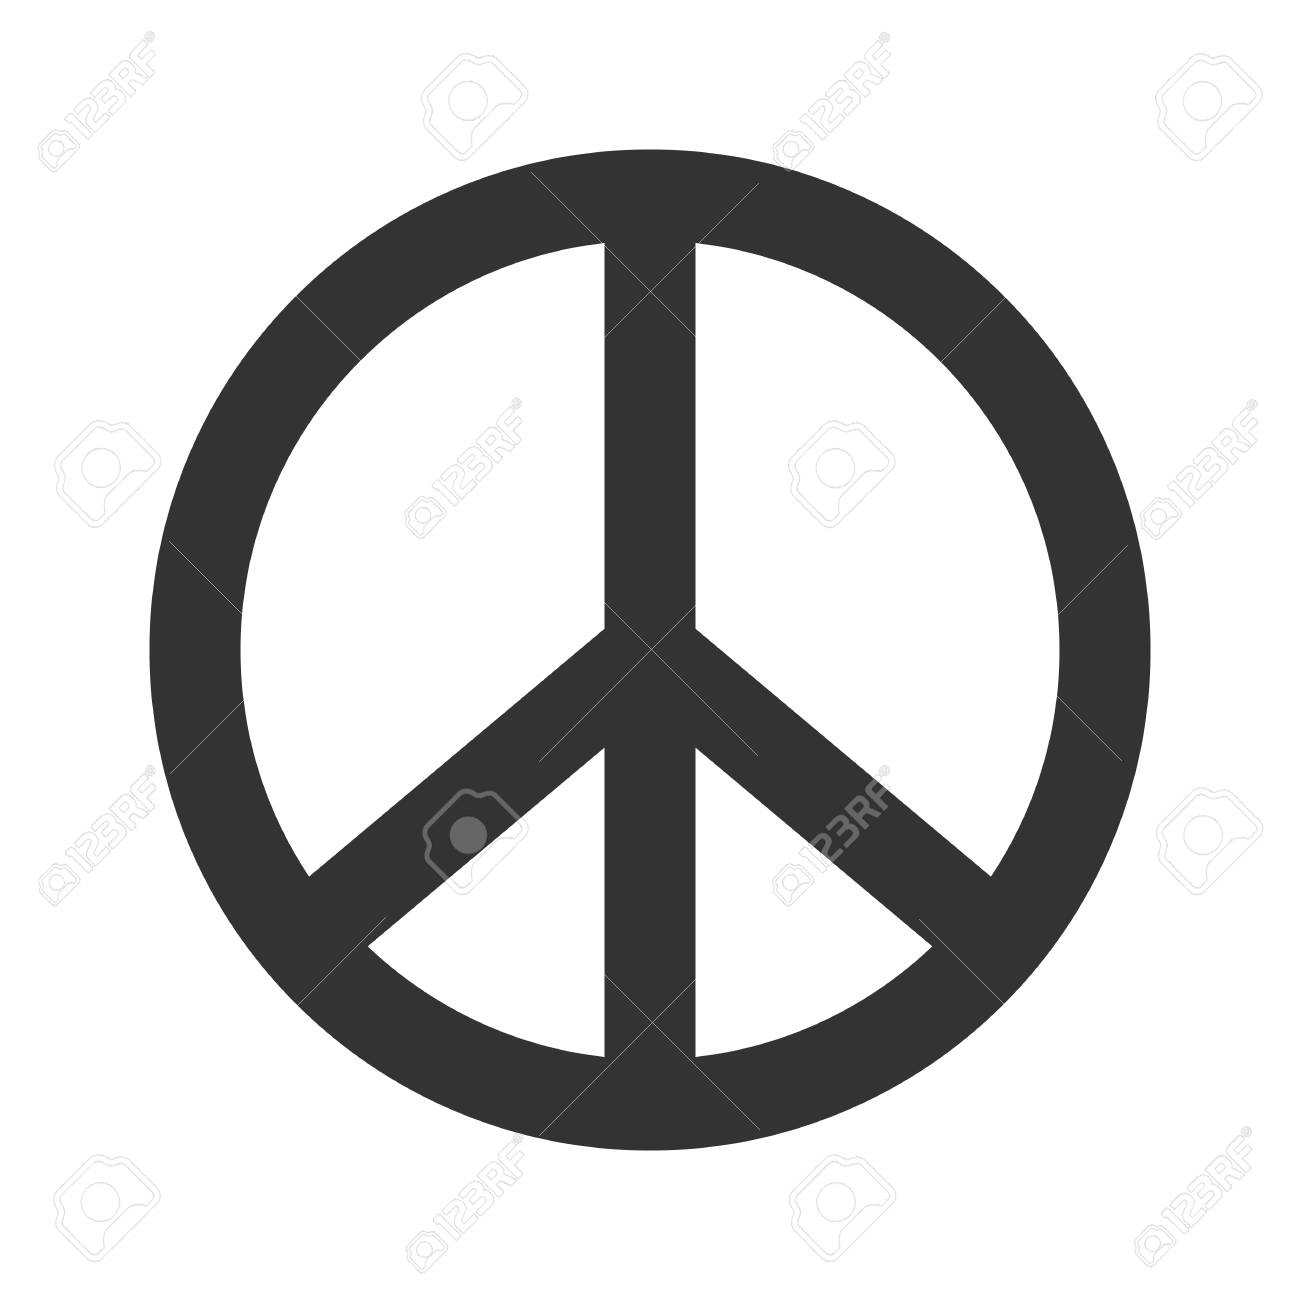 peace sign hippie symbol of peace vector illustration eps 10 rh 123rf com peace sign vector file peace sign vector clip art